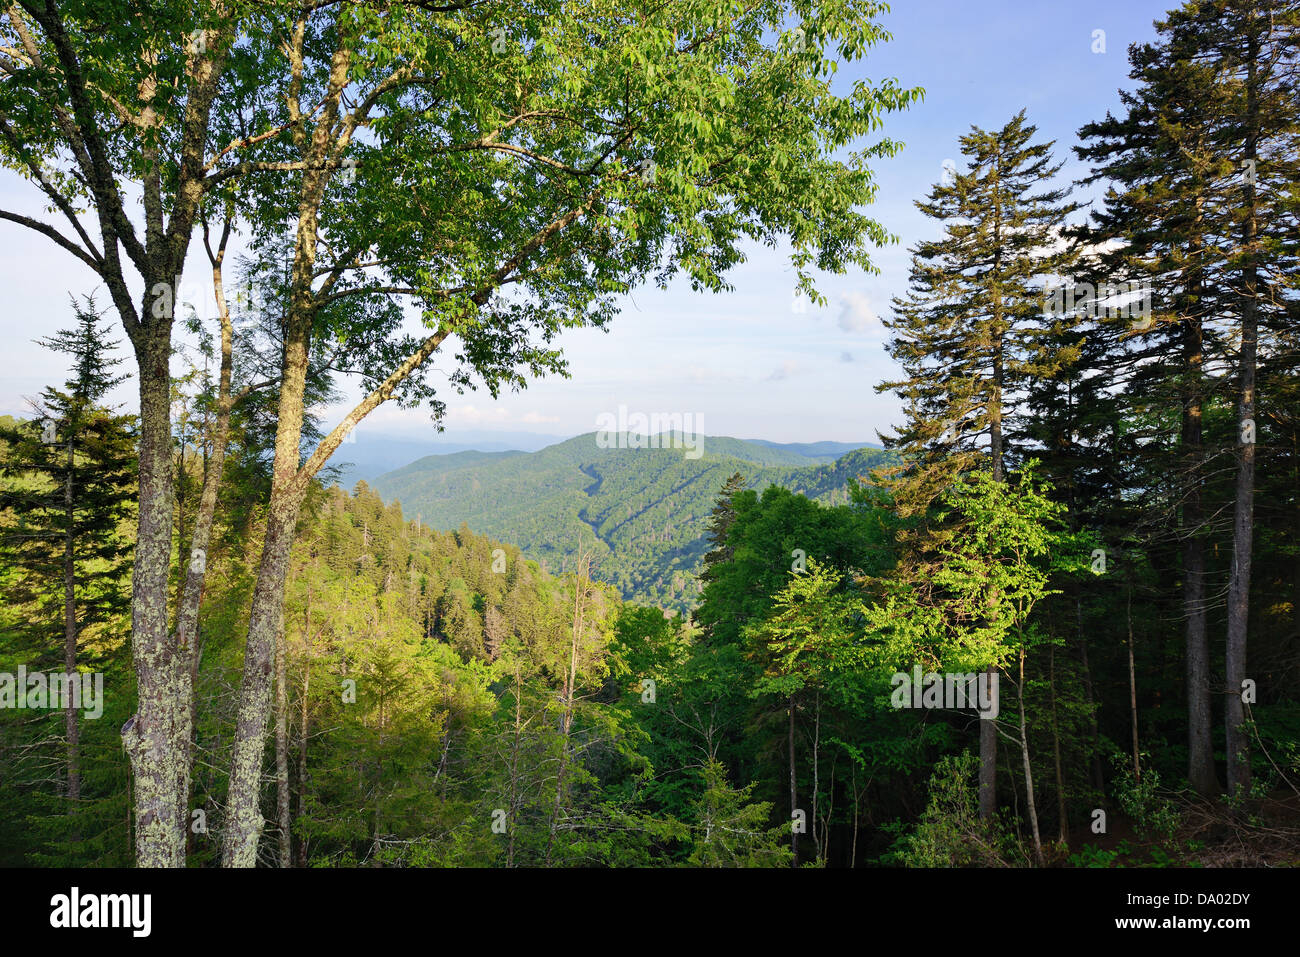 Newfound Gap in the Great Smoky Mountains. - Stock Image